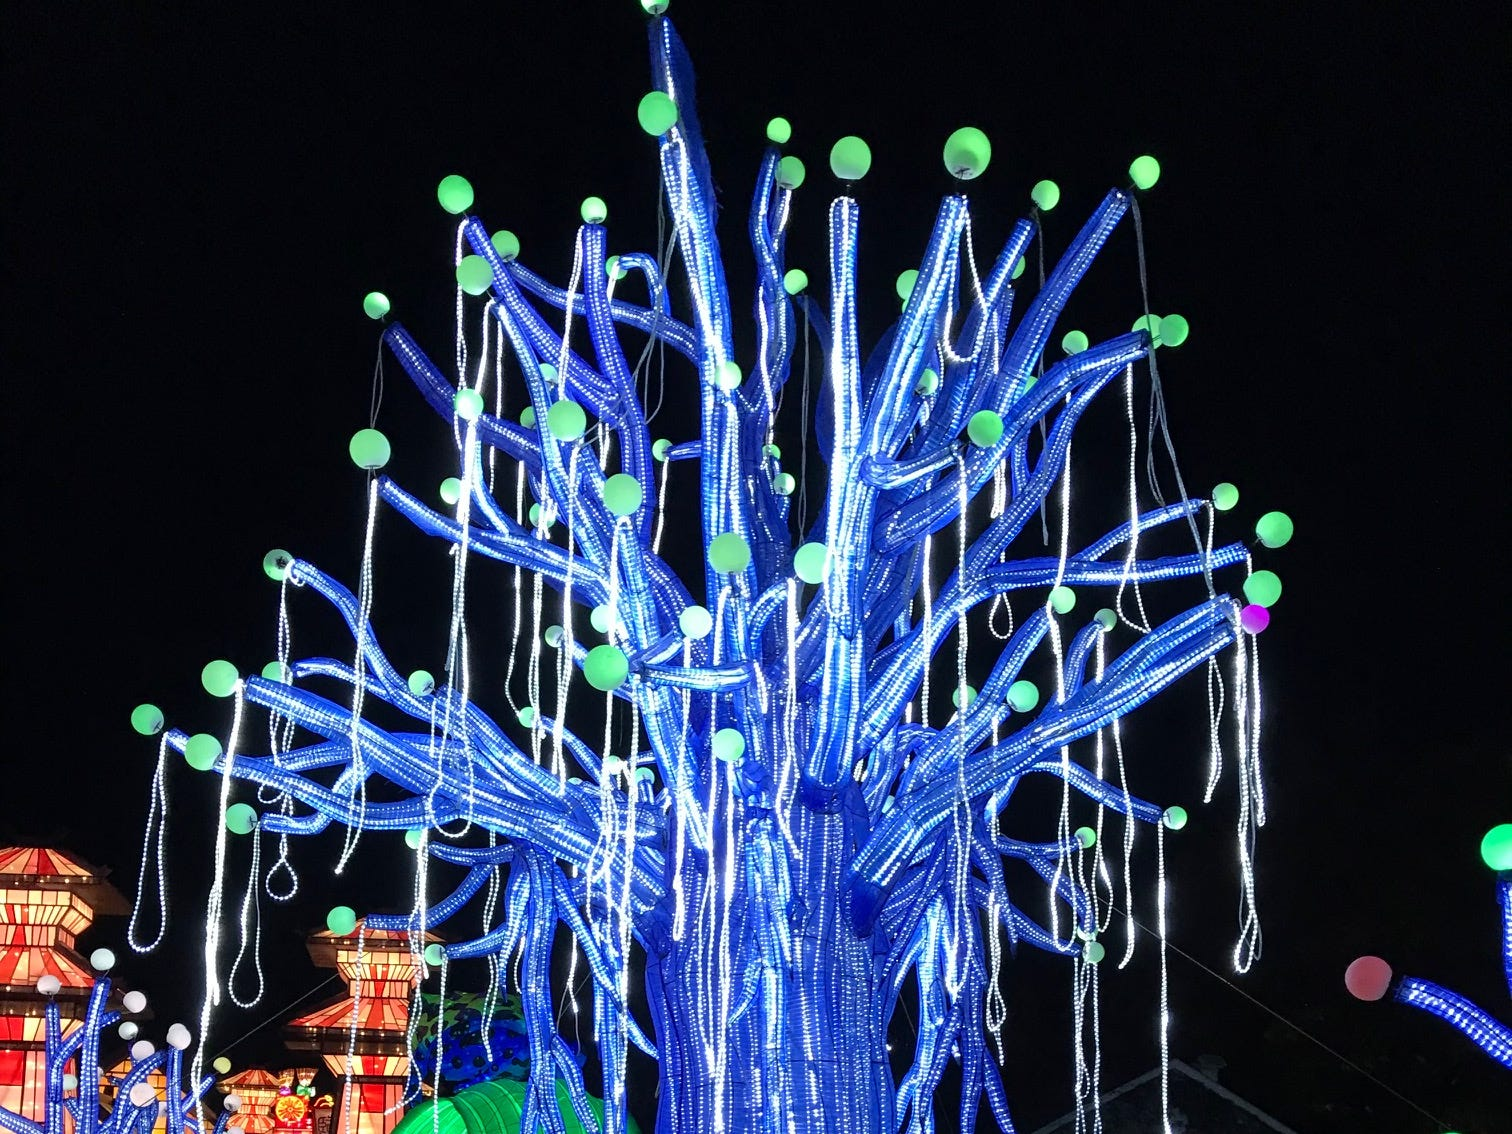 The Make a Wish Tree at the China Lights lantern festival is a beautiful display on the grounds of the Boerner Botanical Gardens in Hales Corners. The tradition of lighting lanterns began centuries ago, while lantern festivals are traced back to the beginning of the Eastern Han Dynasty (25–220).